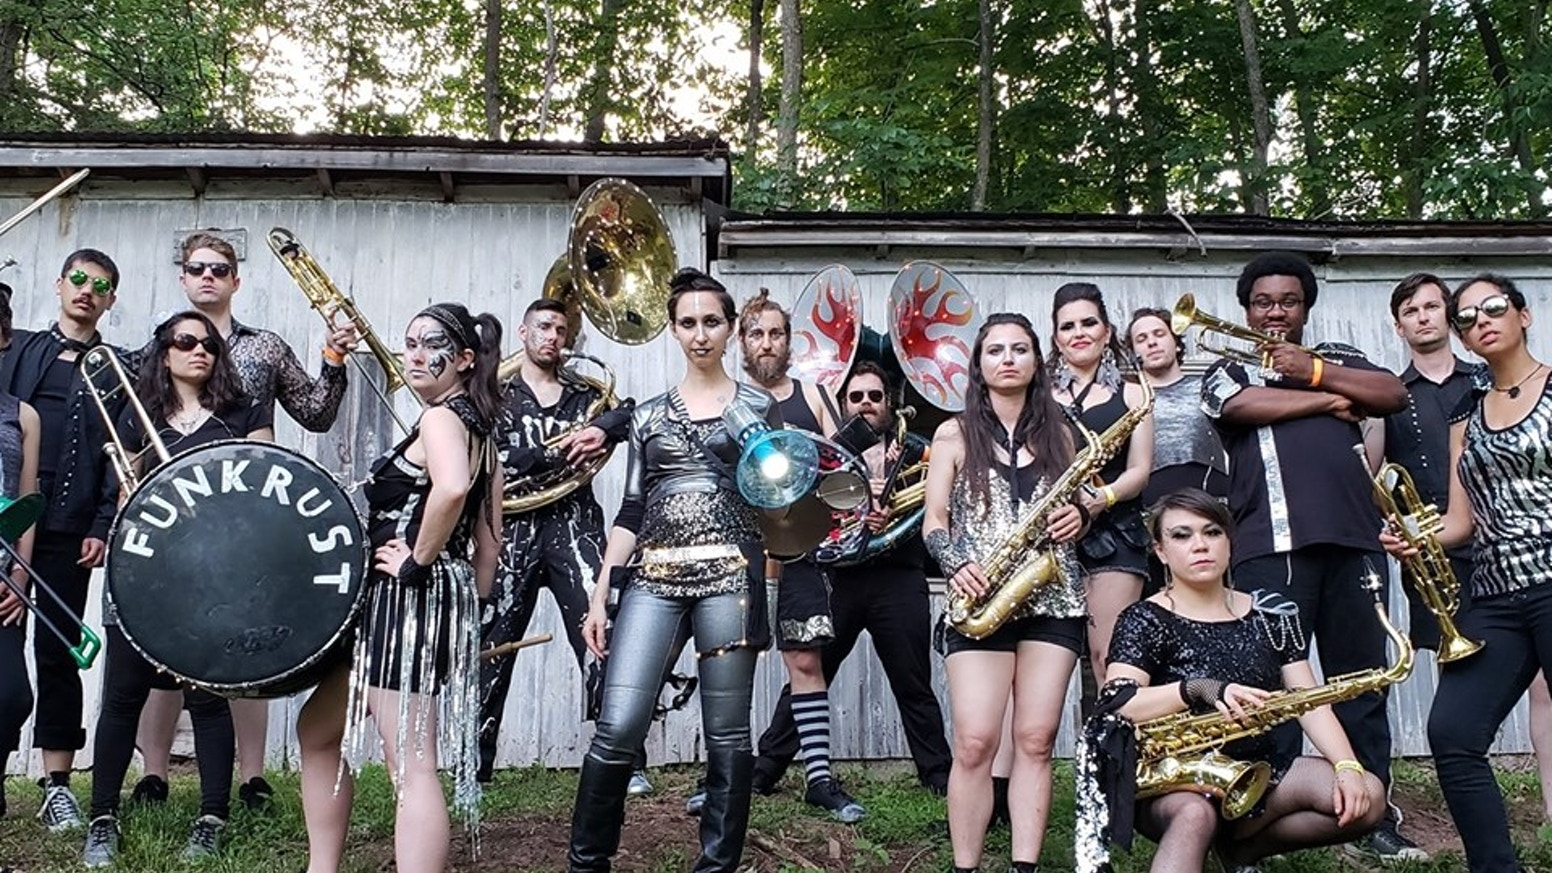 "Brooklyn's post-apocalyptic brass band returns with a four-song digital EP, a two-song 7"" vinyl single and three ambitious music videos"